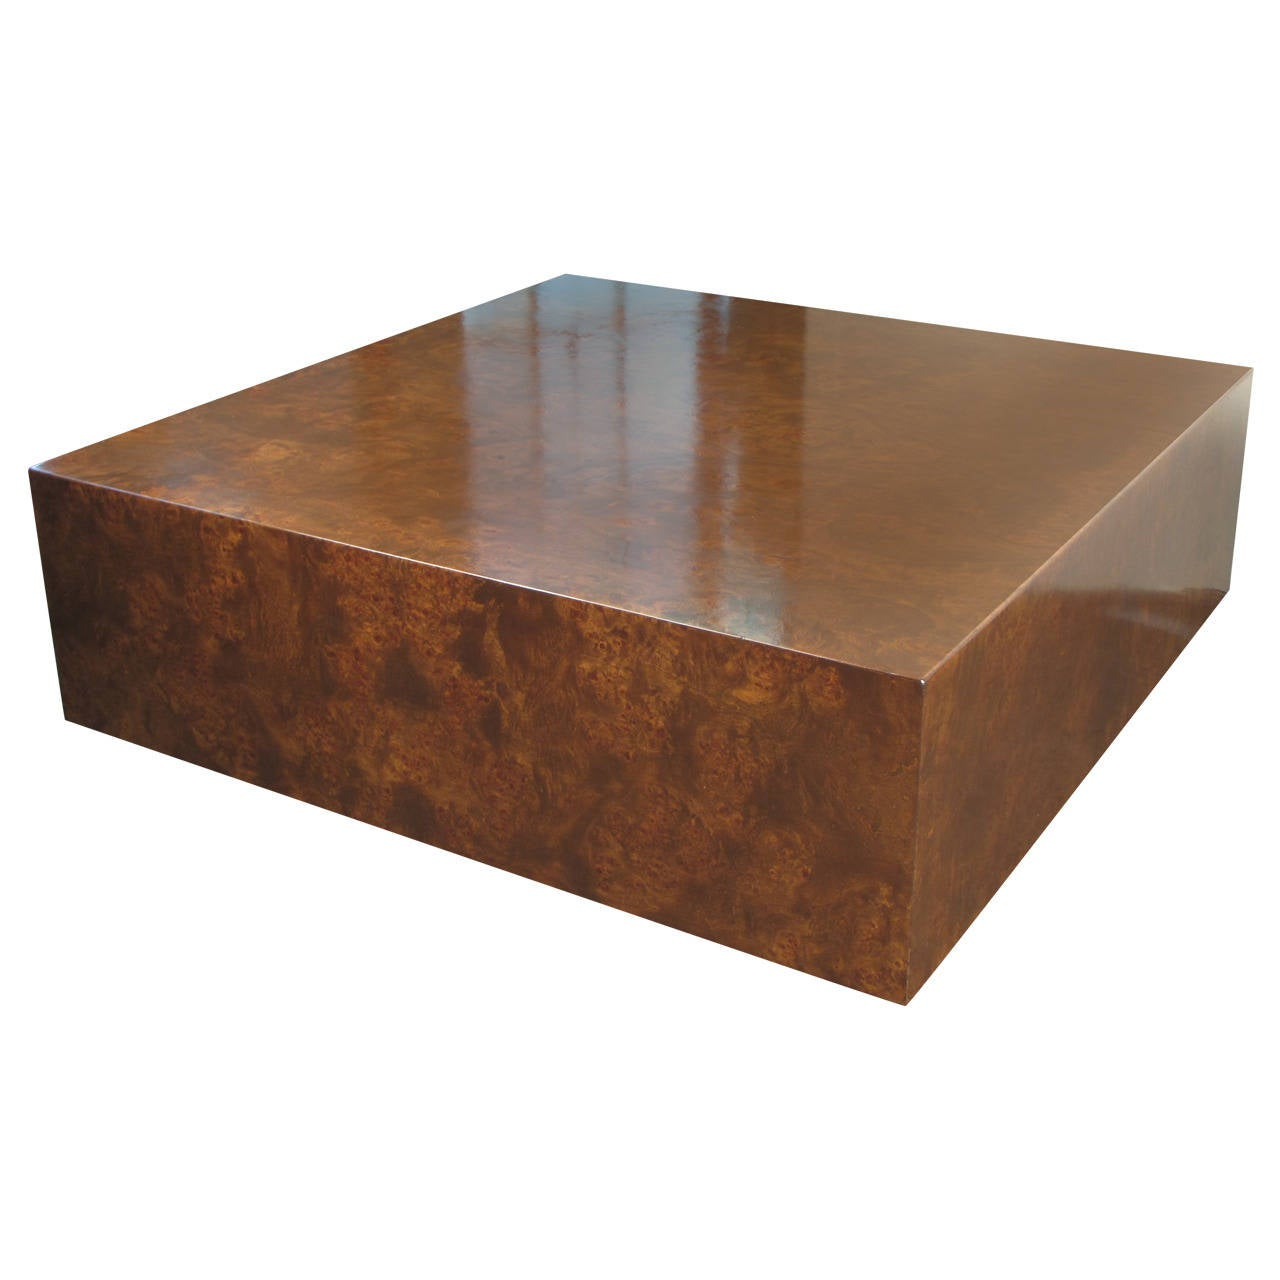 Burled Wood Cube Coffee Table By Milo Baughman For Thayer Coggin 1970s At 1stdibs